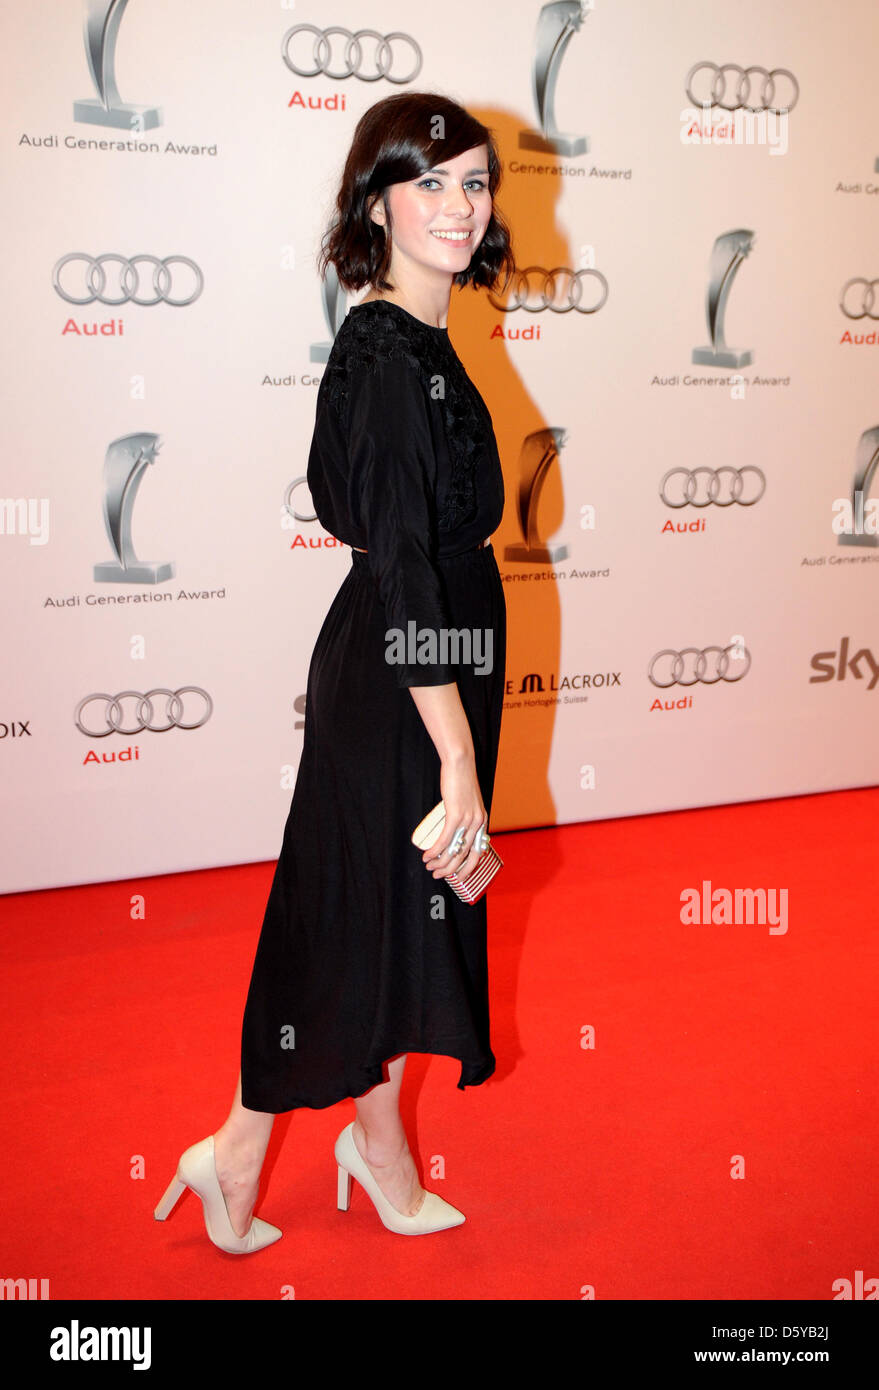 German actress Nora Tschirner poses on the red carpet at the Audi Generation Awards in Munich, Germany, 20 October - Stock Image